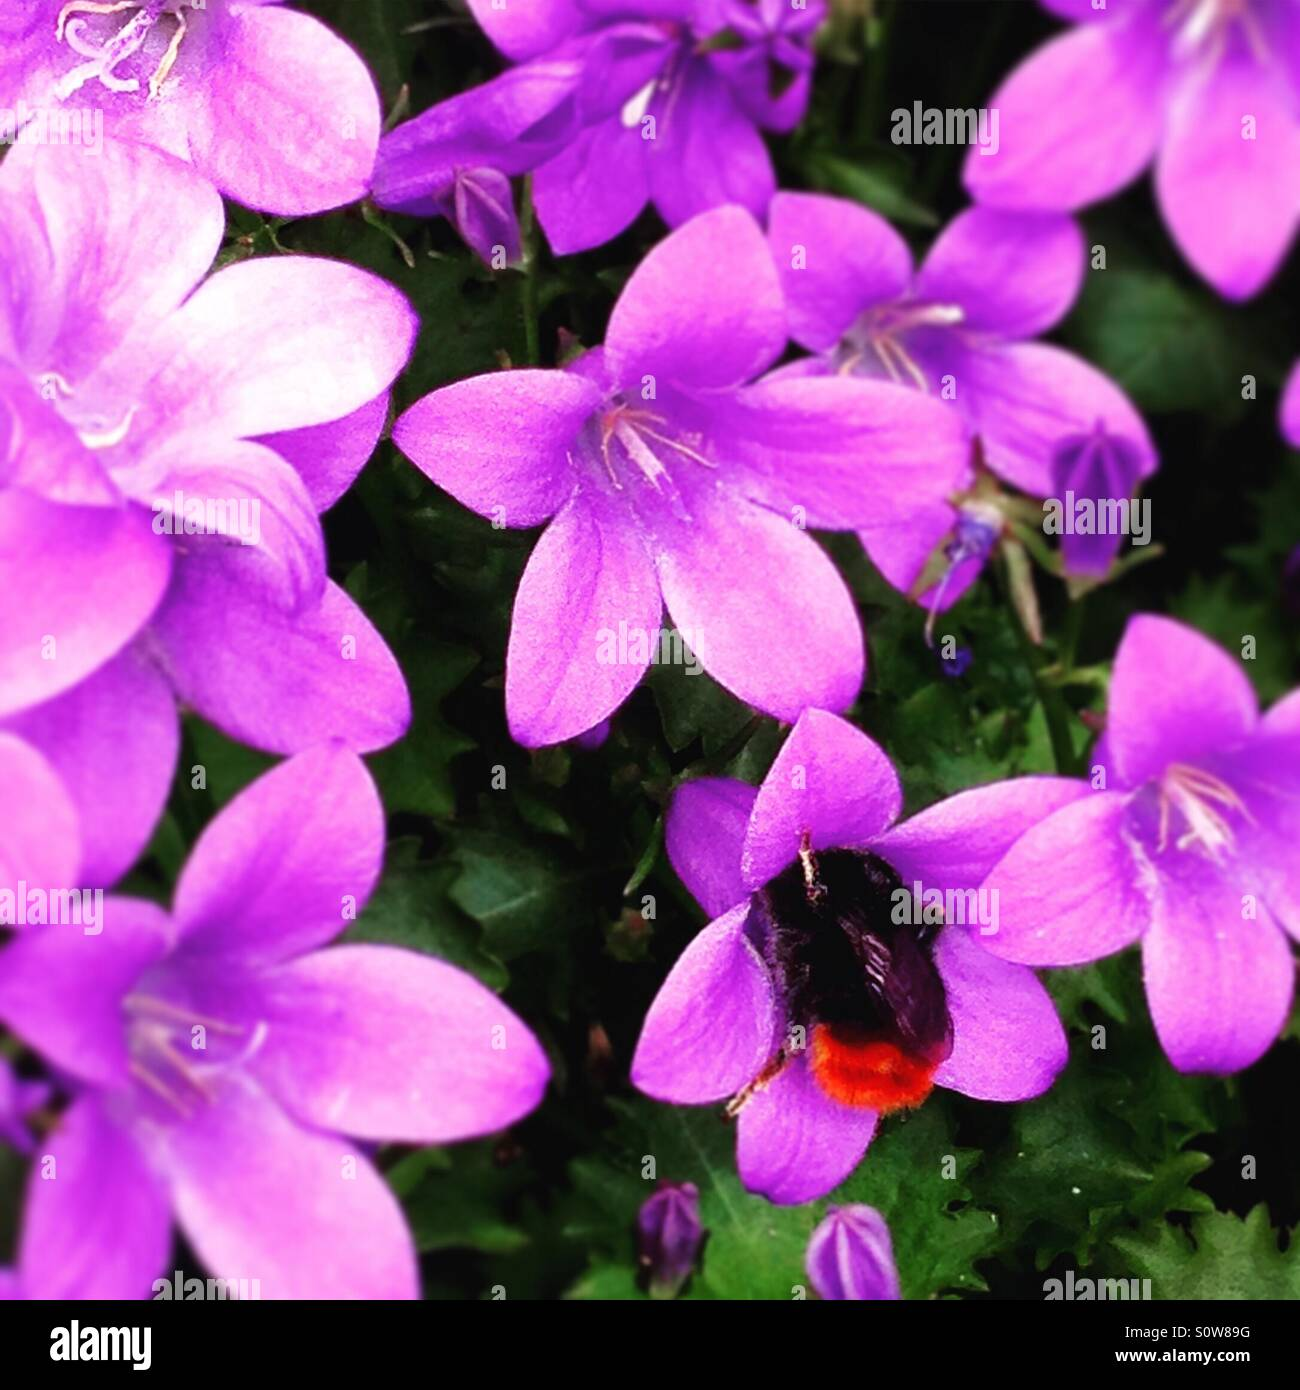 Bumble bee sucking nectar from a purple flower stock photo bumble bee sucking nectar from a purple flower biocorpaavc